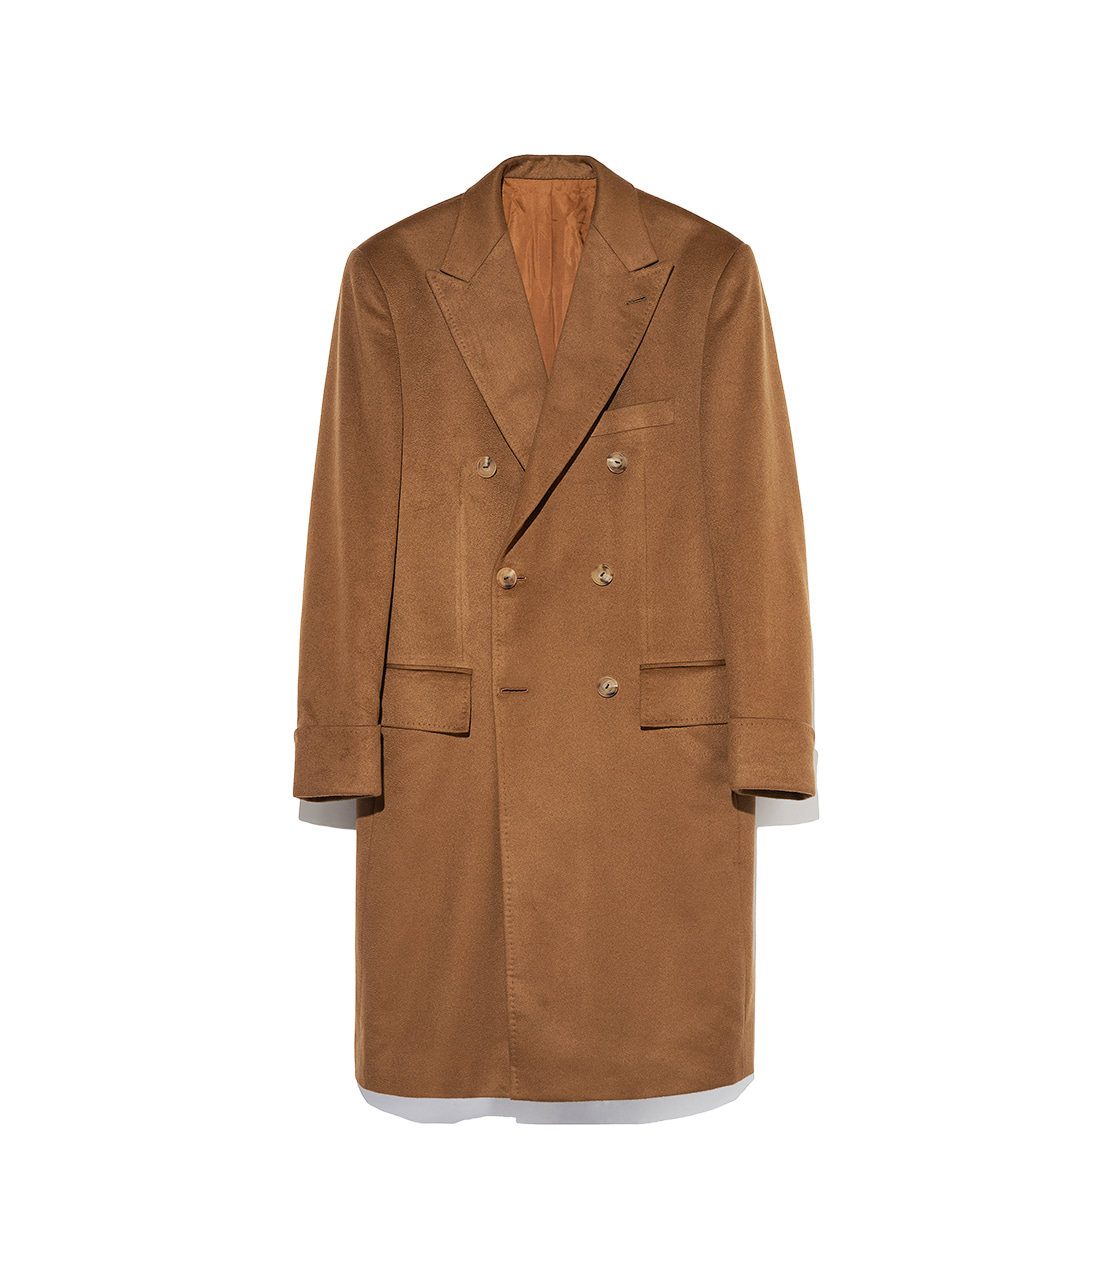 The Classic Cashmere Coat